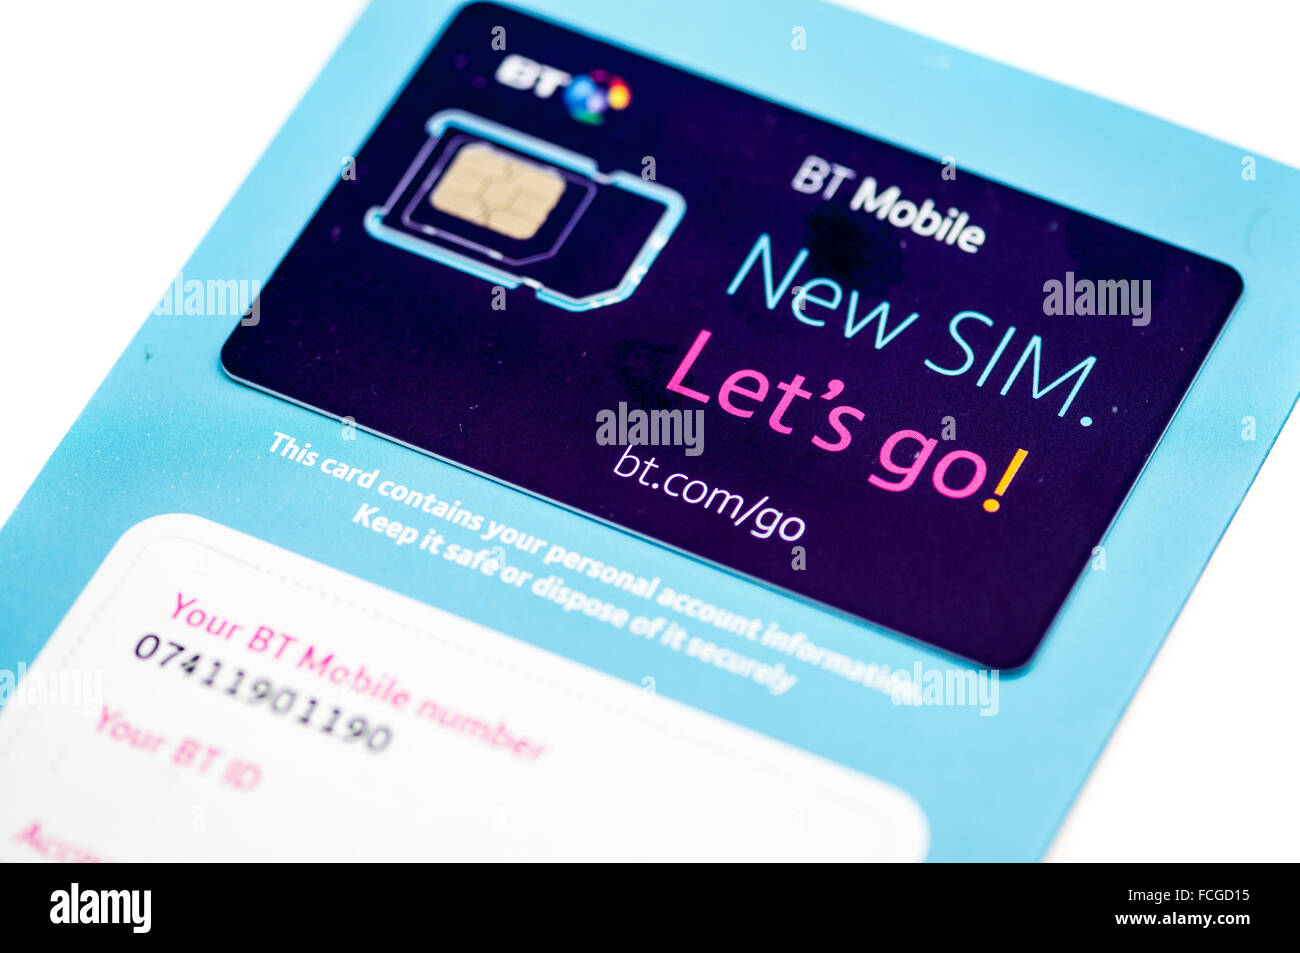 BT Mobile SIM card.  BT has recently bought EE and are in the process of merging its MVNO with EE. - Stock Image